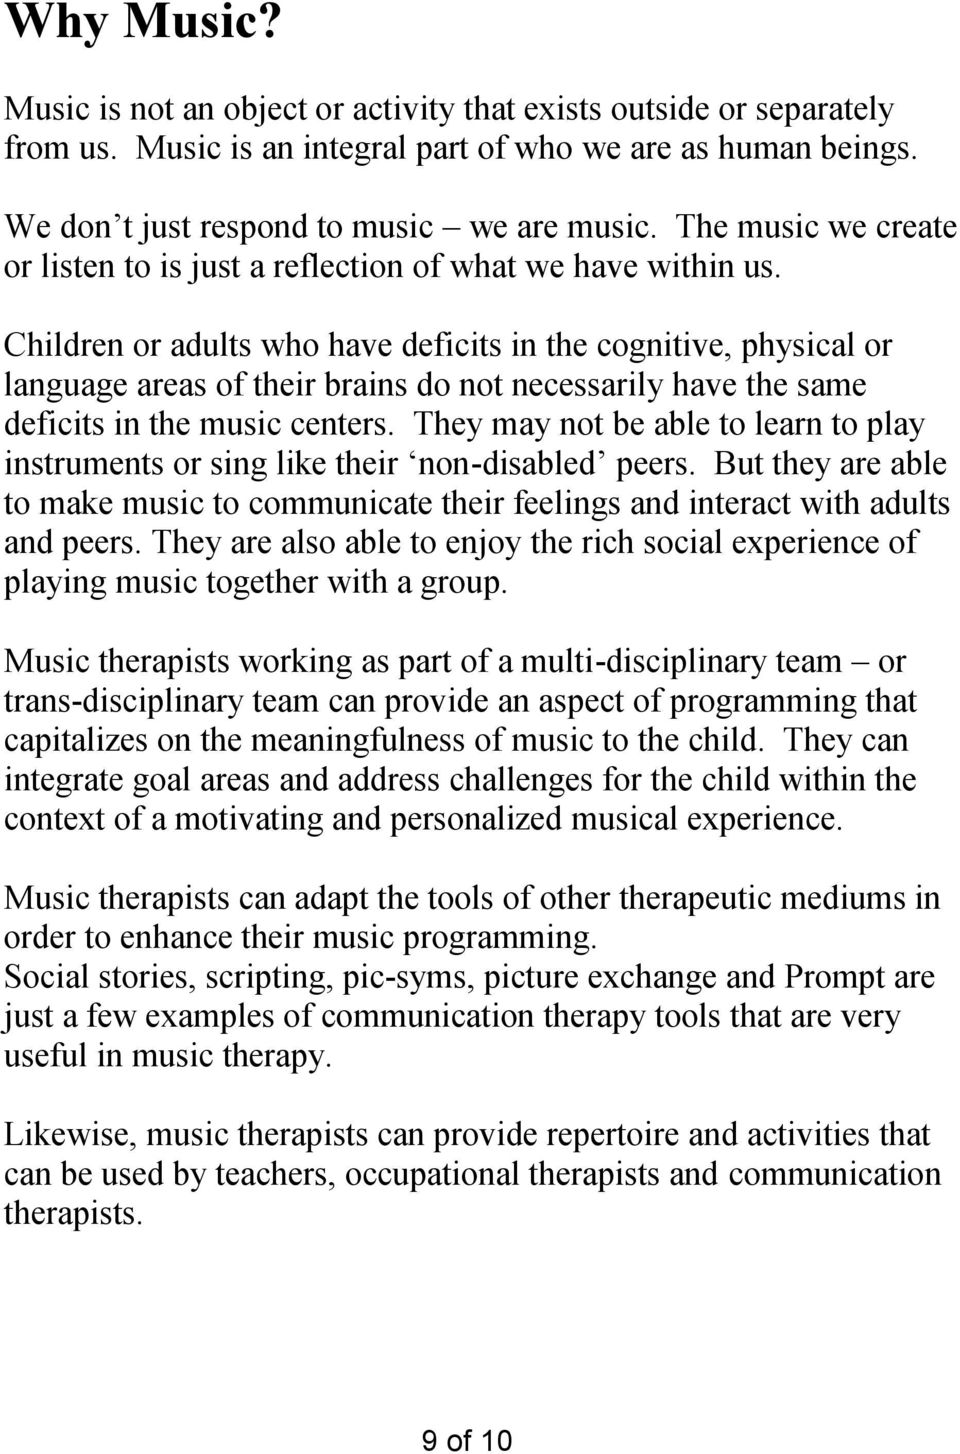 Children or adults who have deficits in the cognitive, physical or language areas of their brains do not necessarily have the same deficits in the music centers.